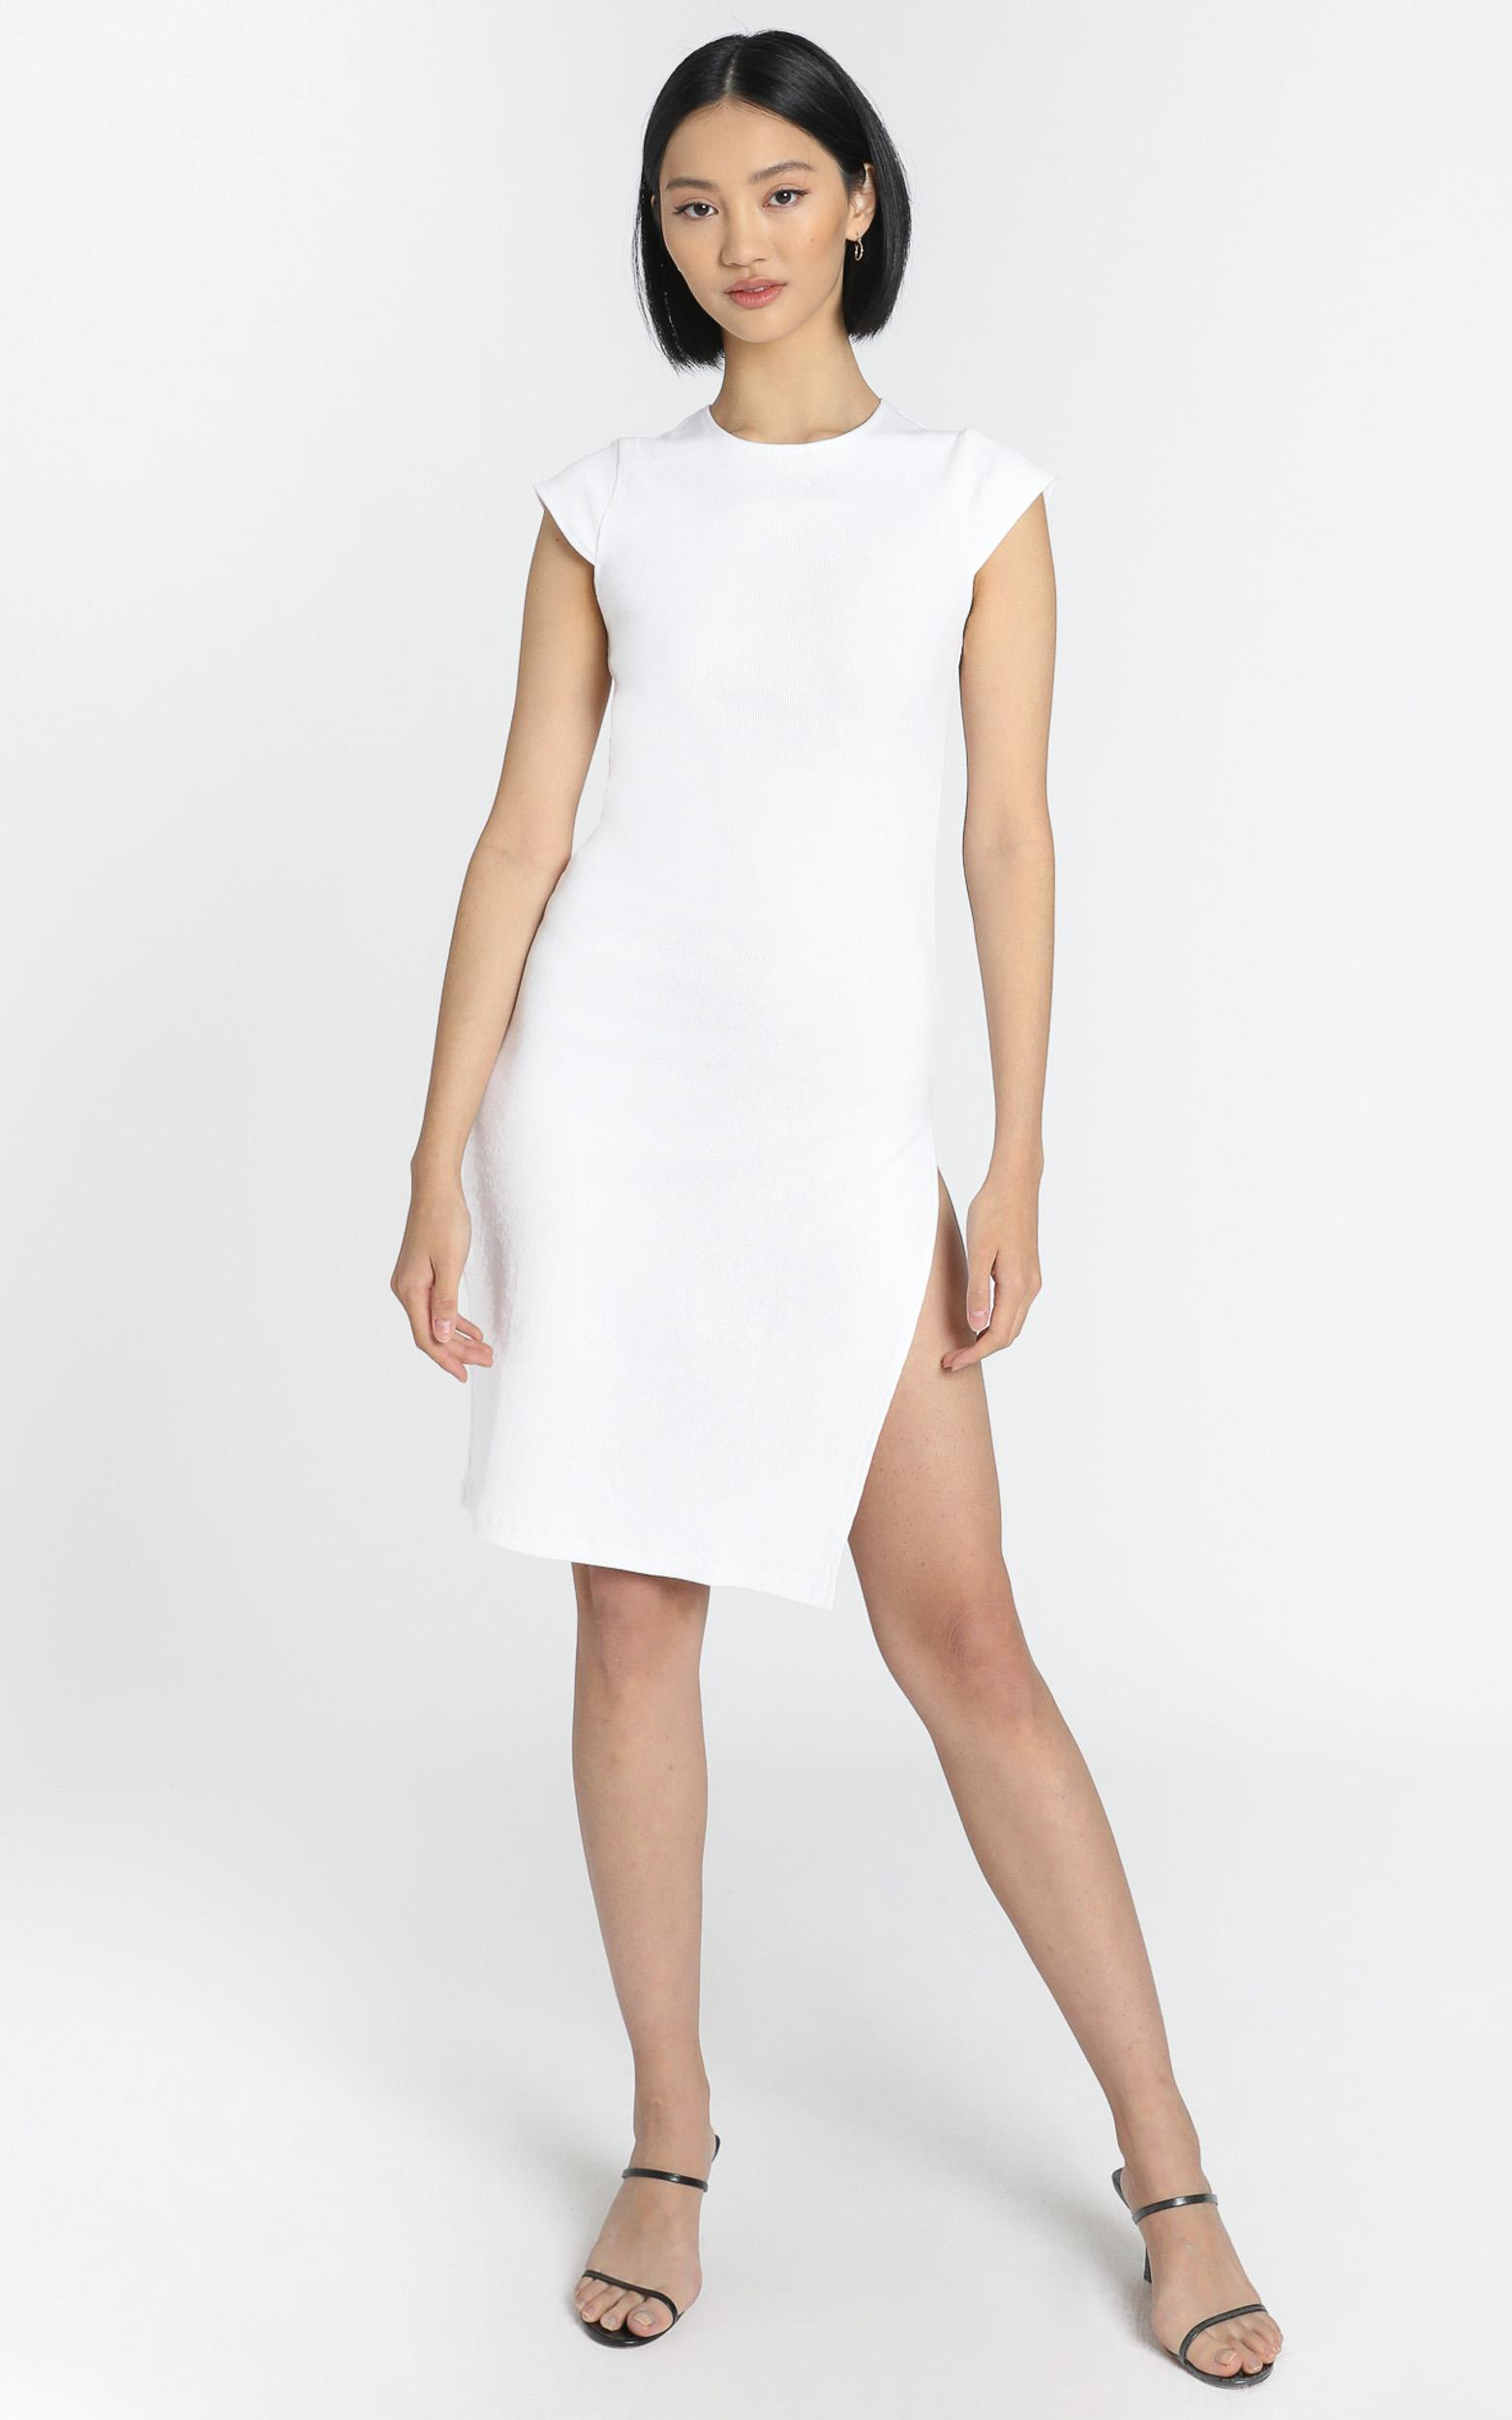 Lioness - Don't Blame me Midi dress in White - 6 (XS), White, hi-res image number null